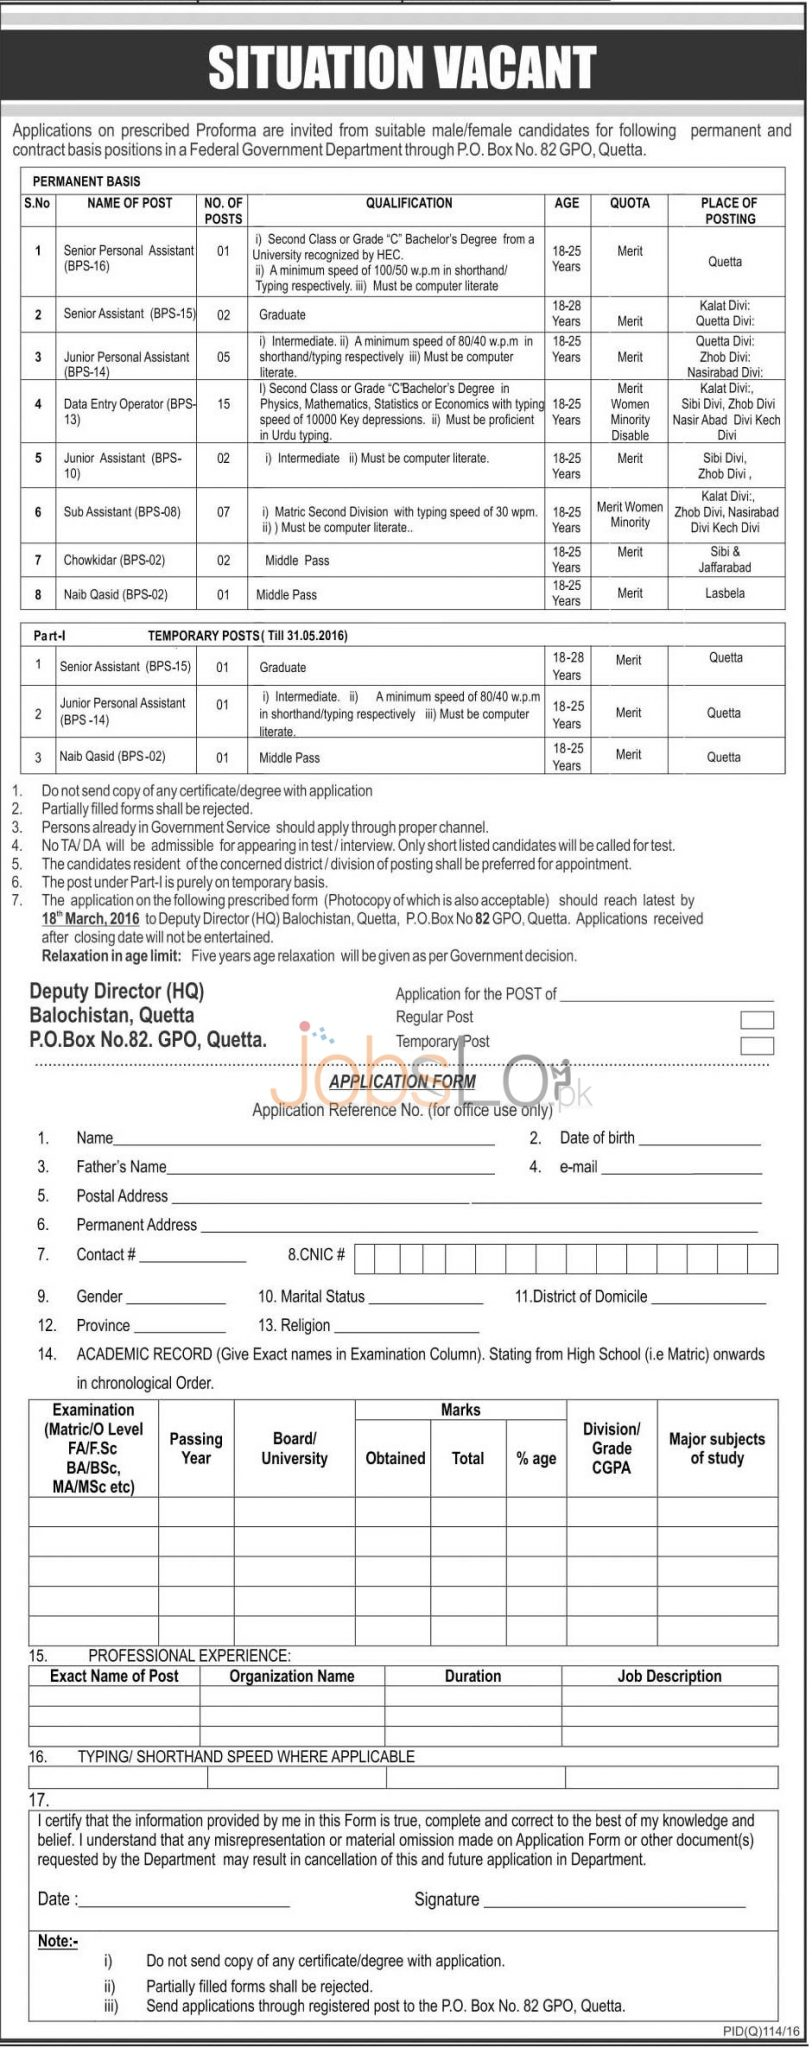 Recruitment Opportunities in  Federal Government Development 2016 in Quetta Career Opportunities